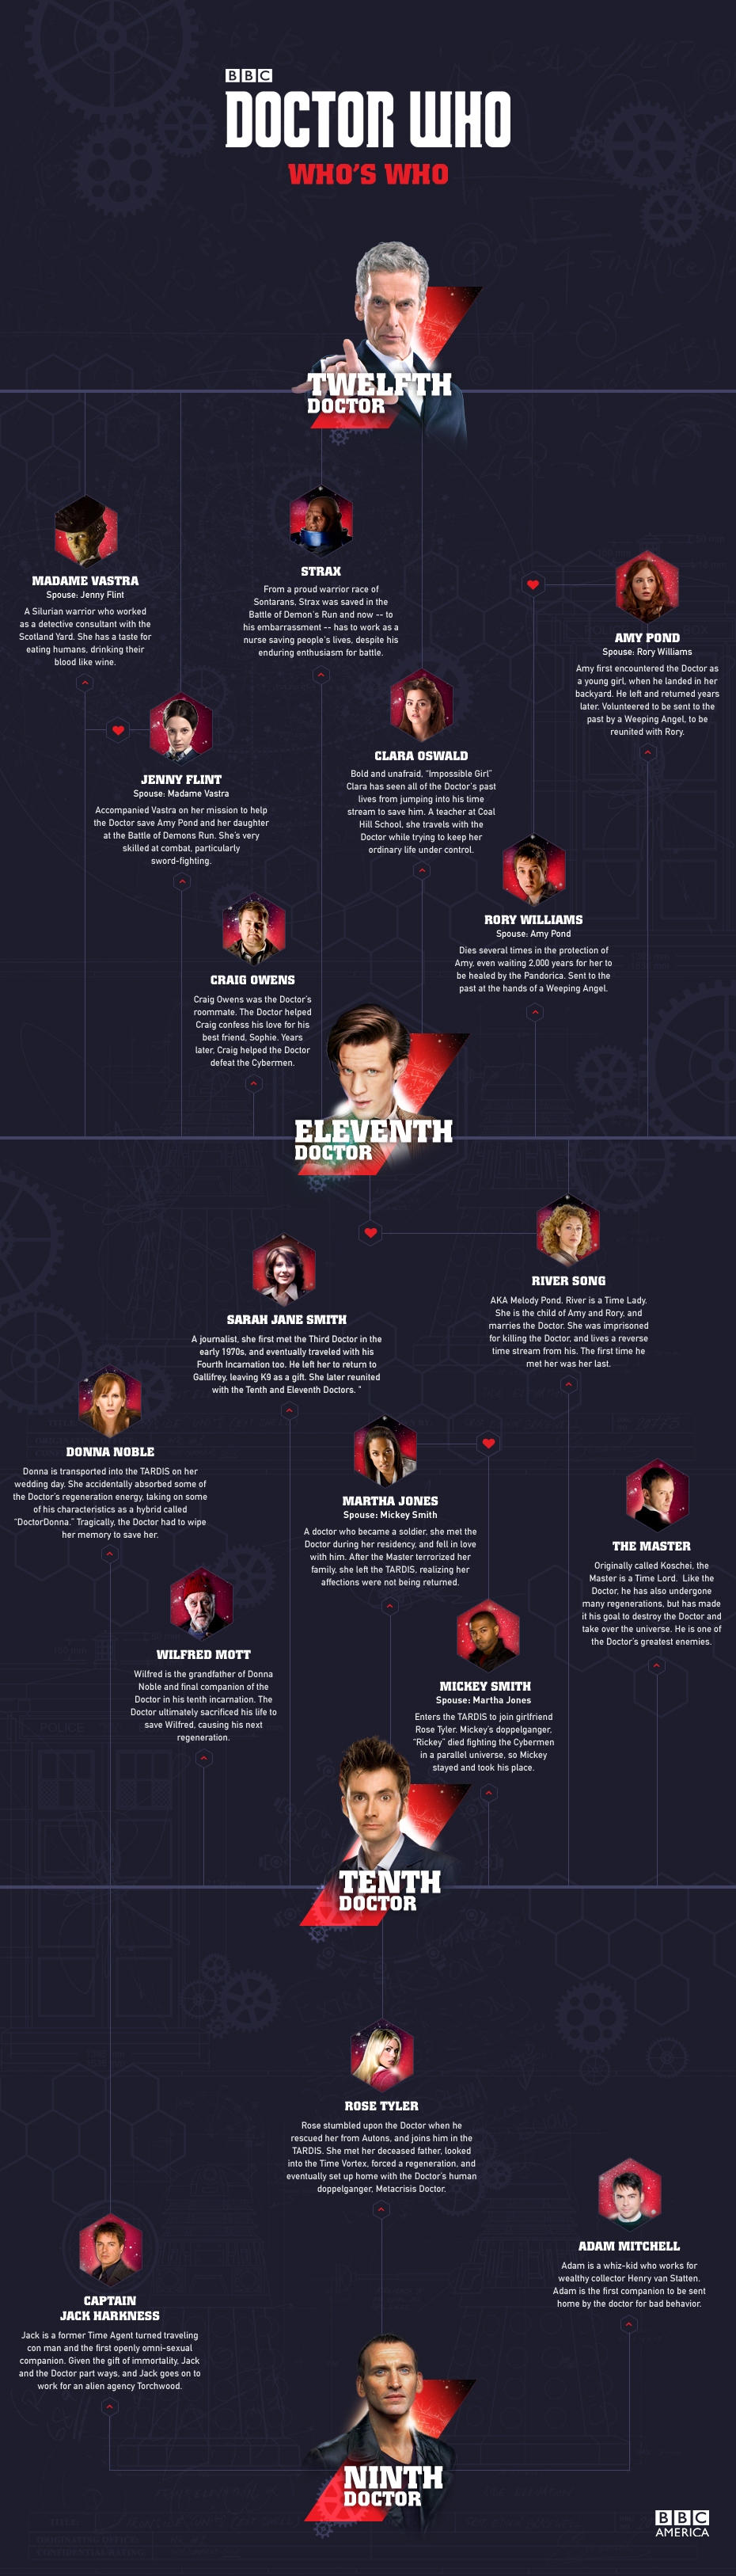 DD_Family_tree_doctor_who_infographic-mar-2 (1)